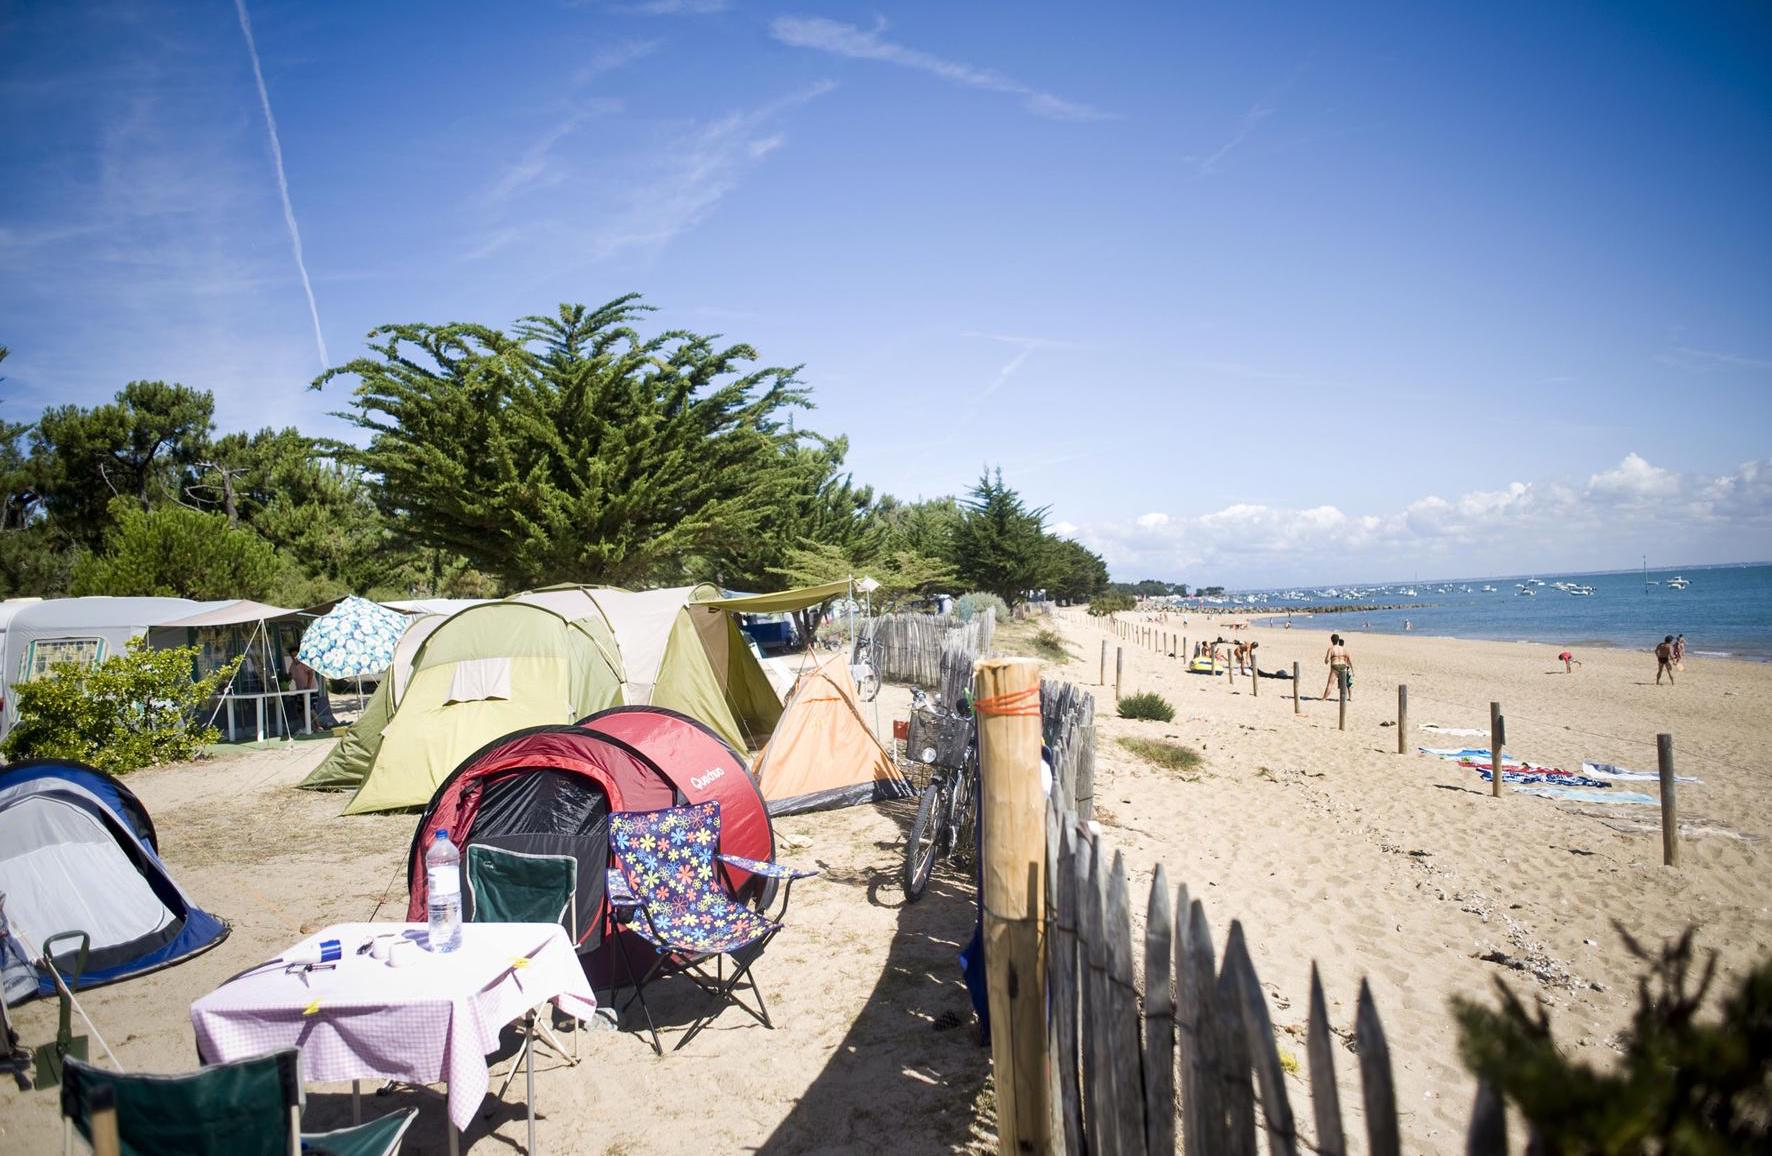 Seaside camping in France best campsites by the beach France